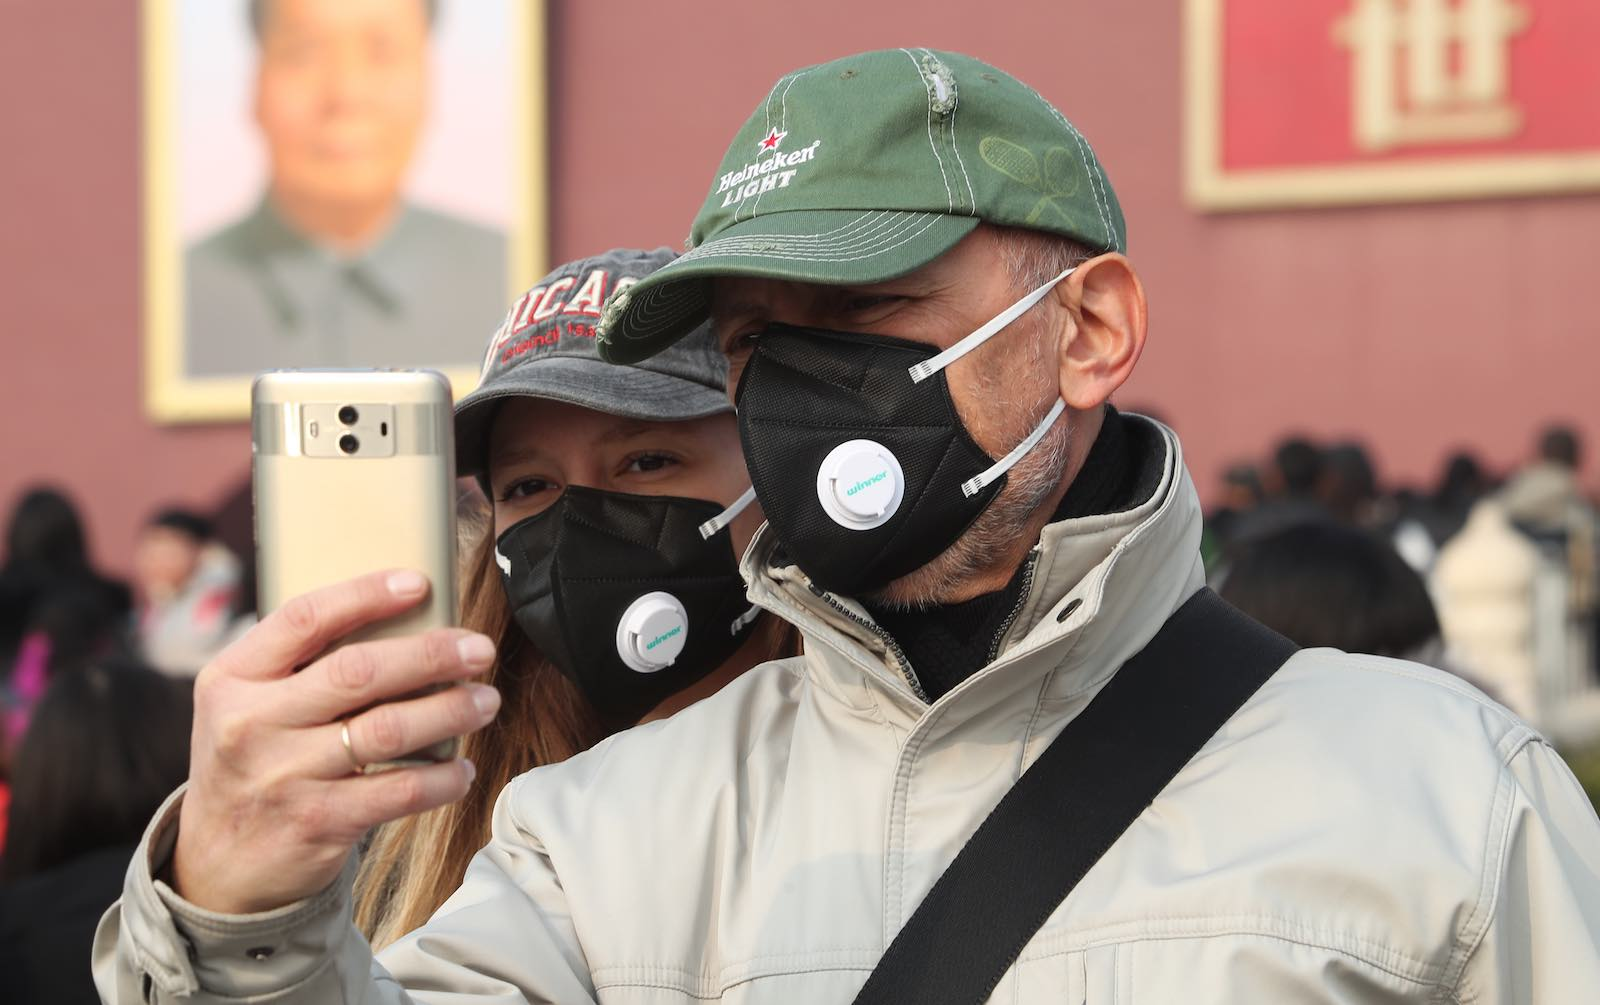 Tourists take a selfie in smog and fog this month at Tiananmen Square, Beijing (Photo: VGC via Getty)